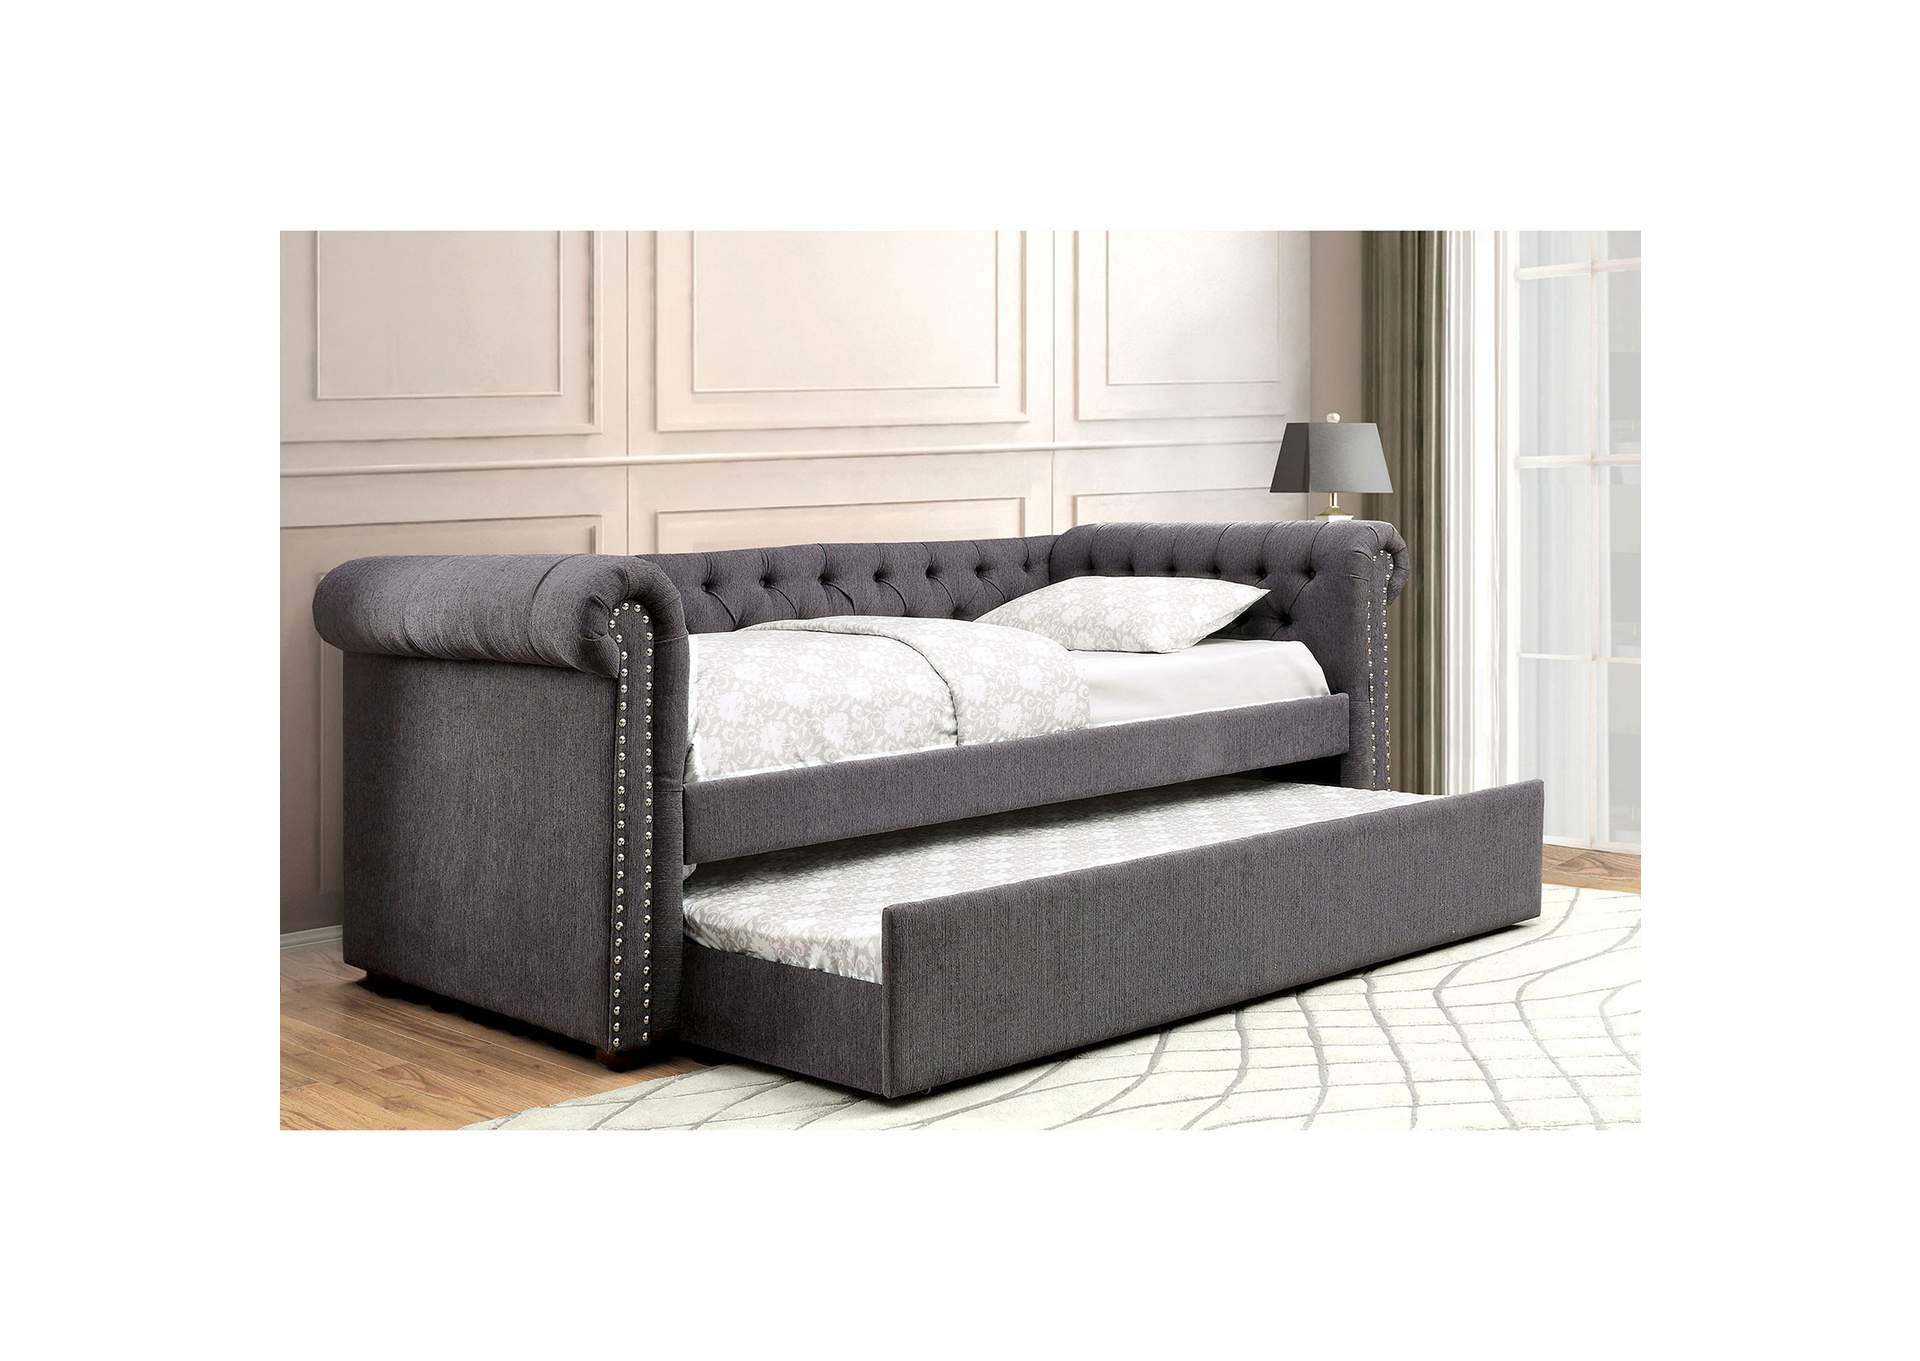 Leanna Gray Daybed w/Trundle,Furniture of America